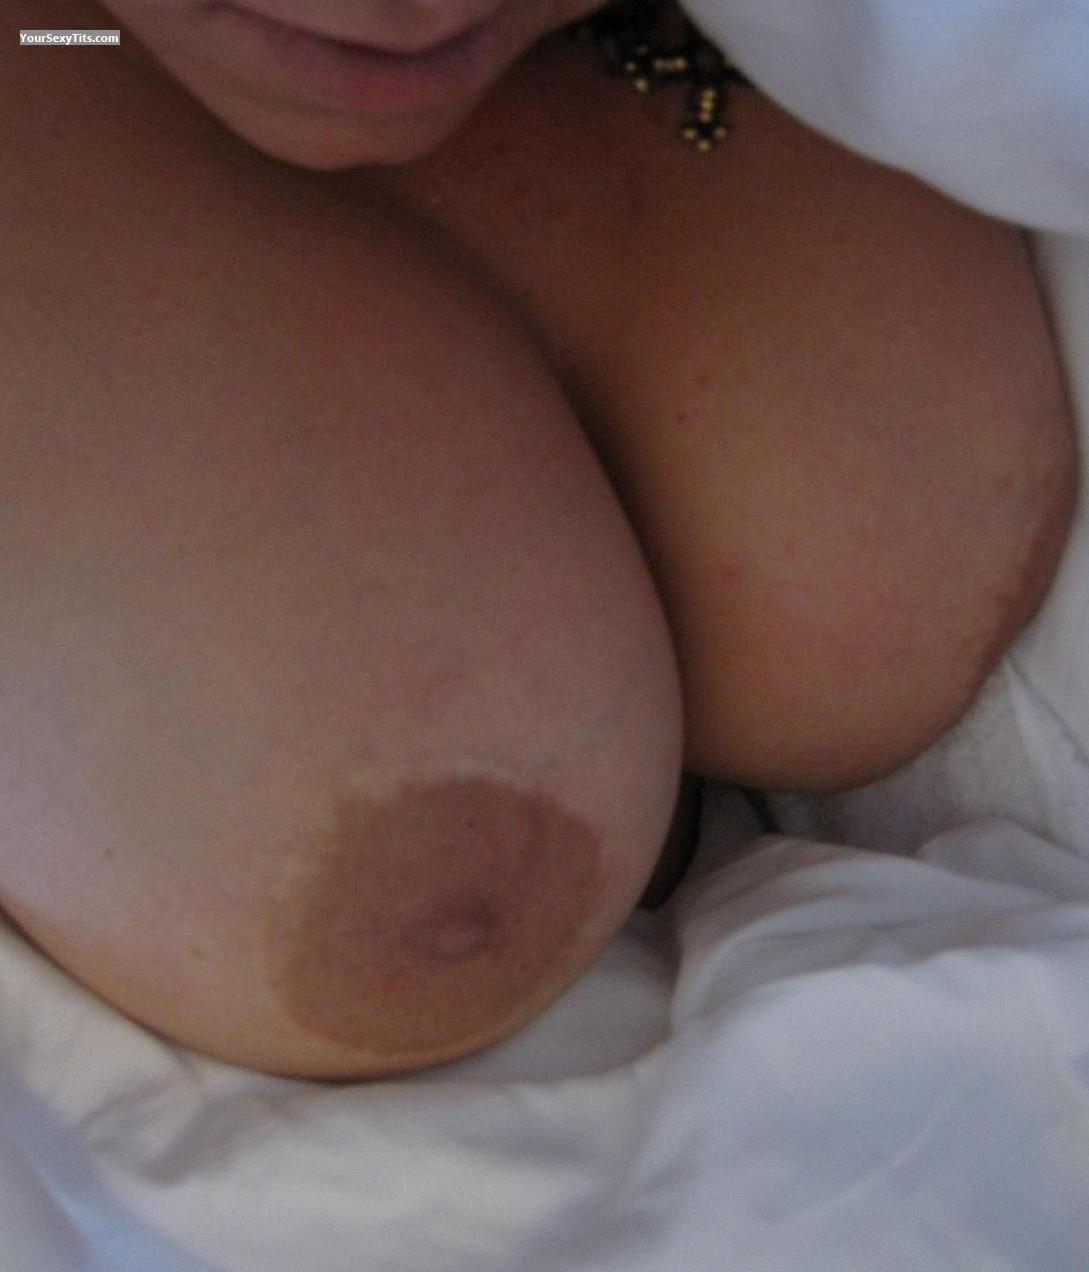 Tit Flash: Very Big Tits - Chesty from Poland